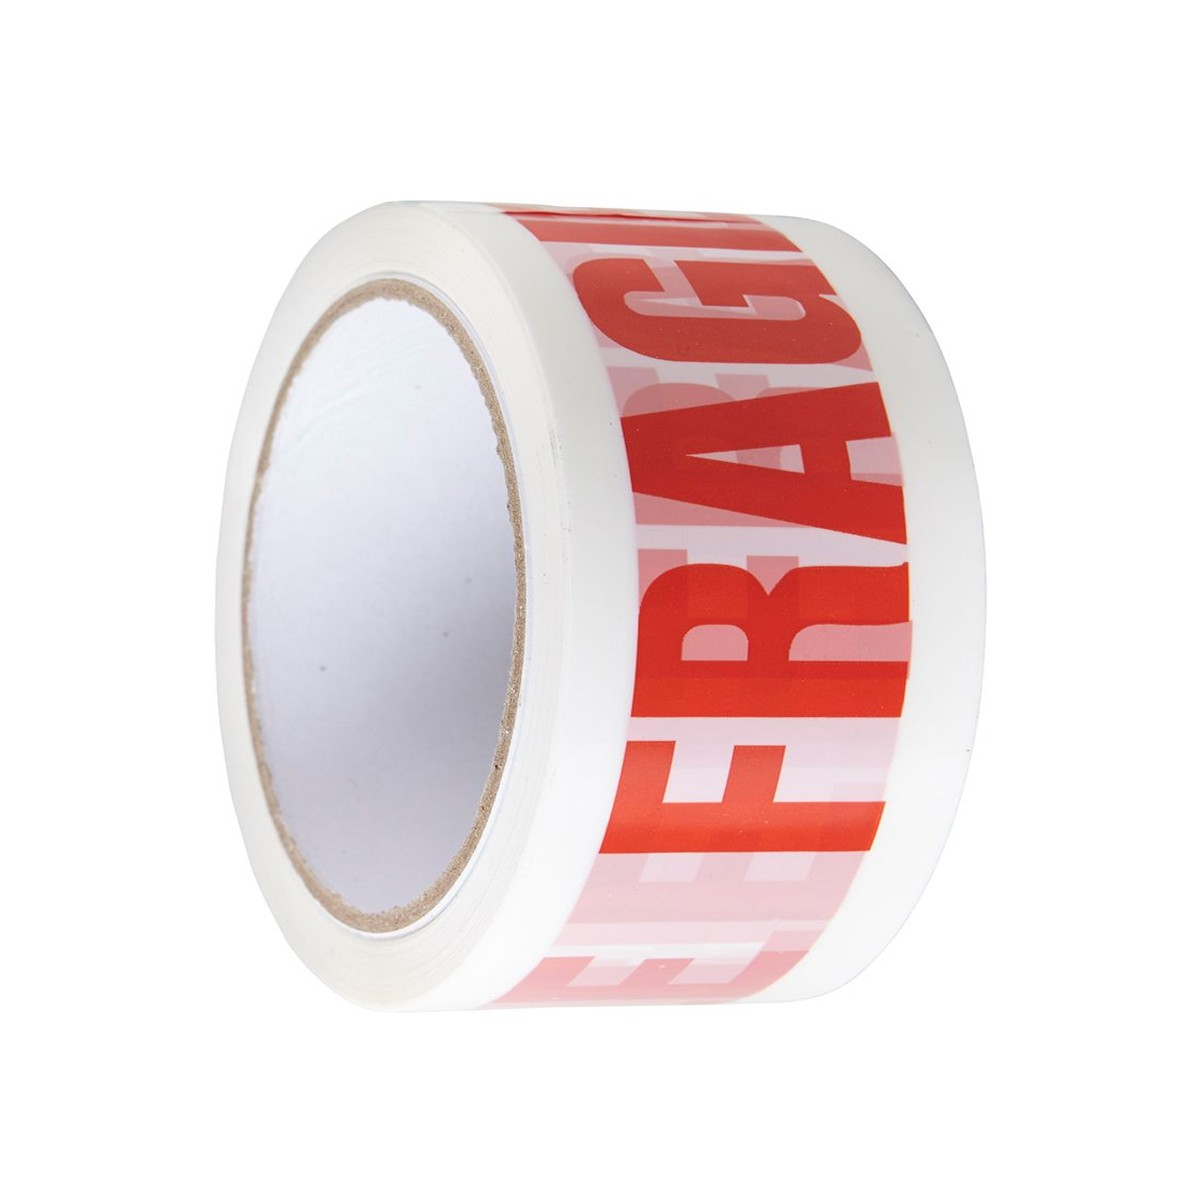 FRAGILE Printed Carton Tape | 1 Roll